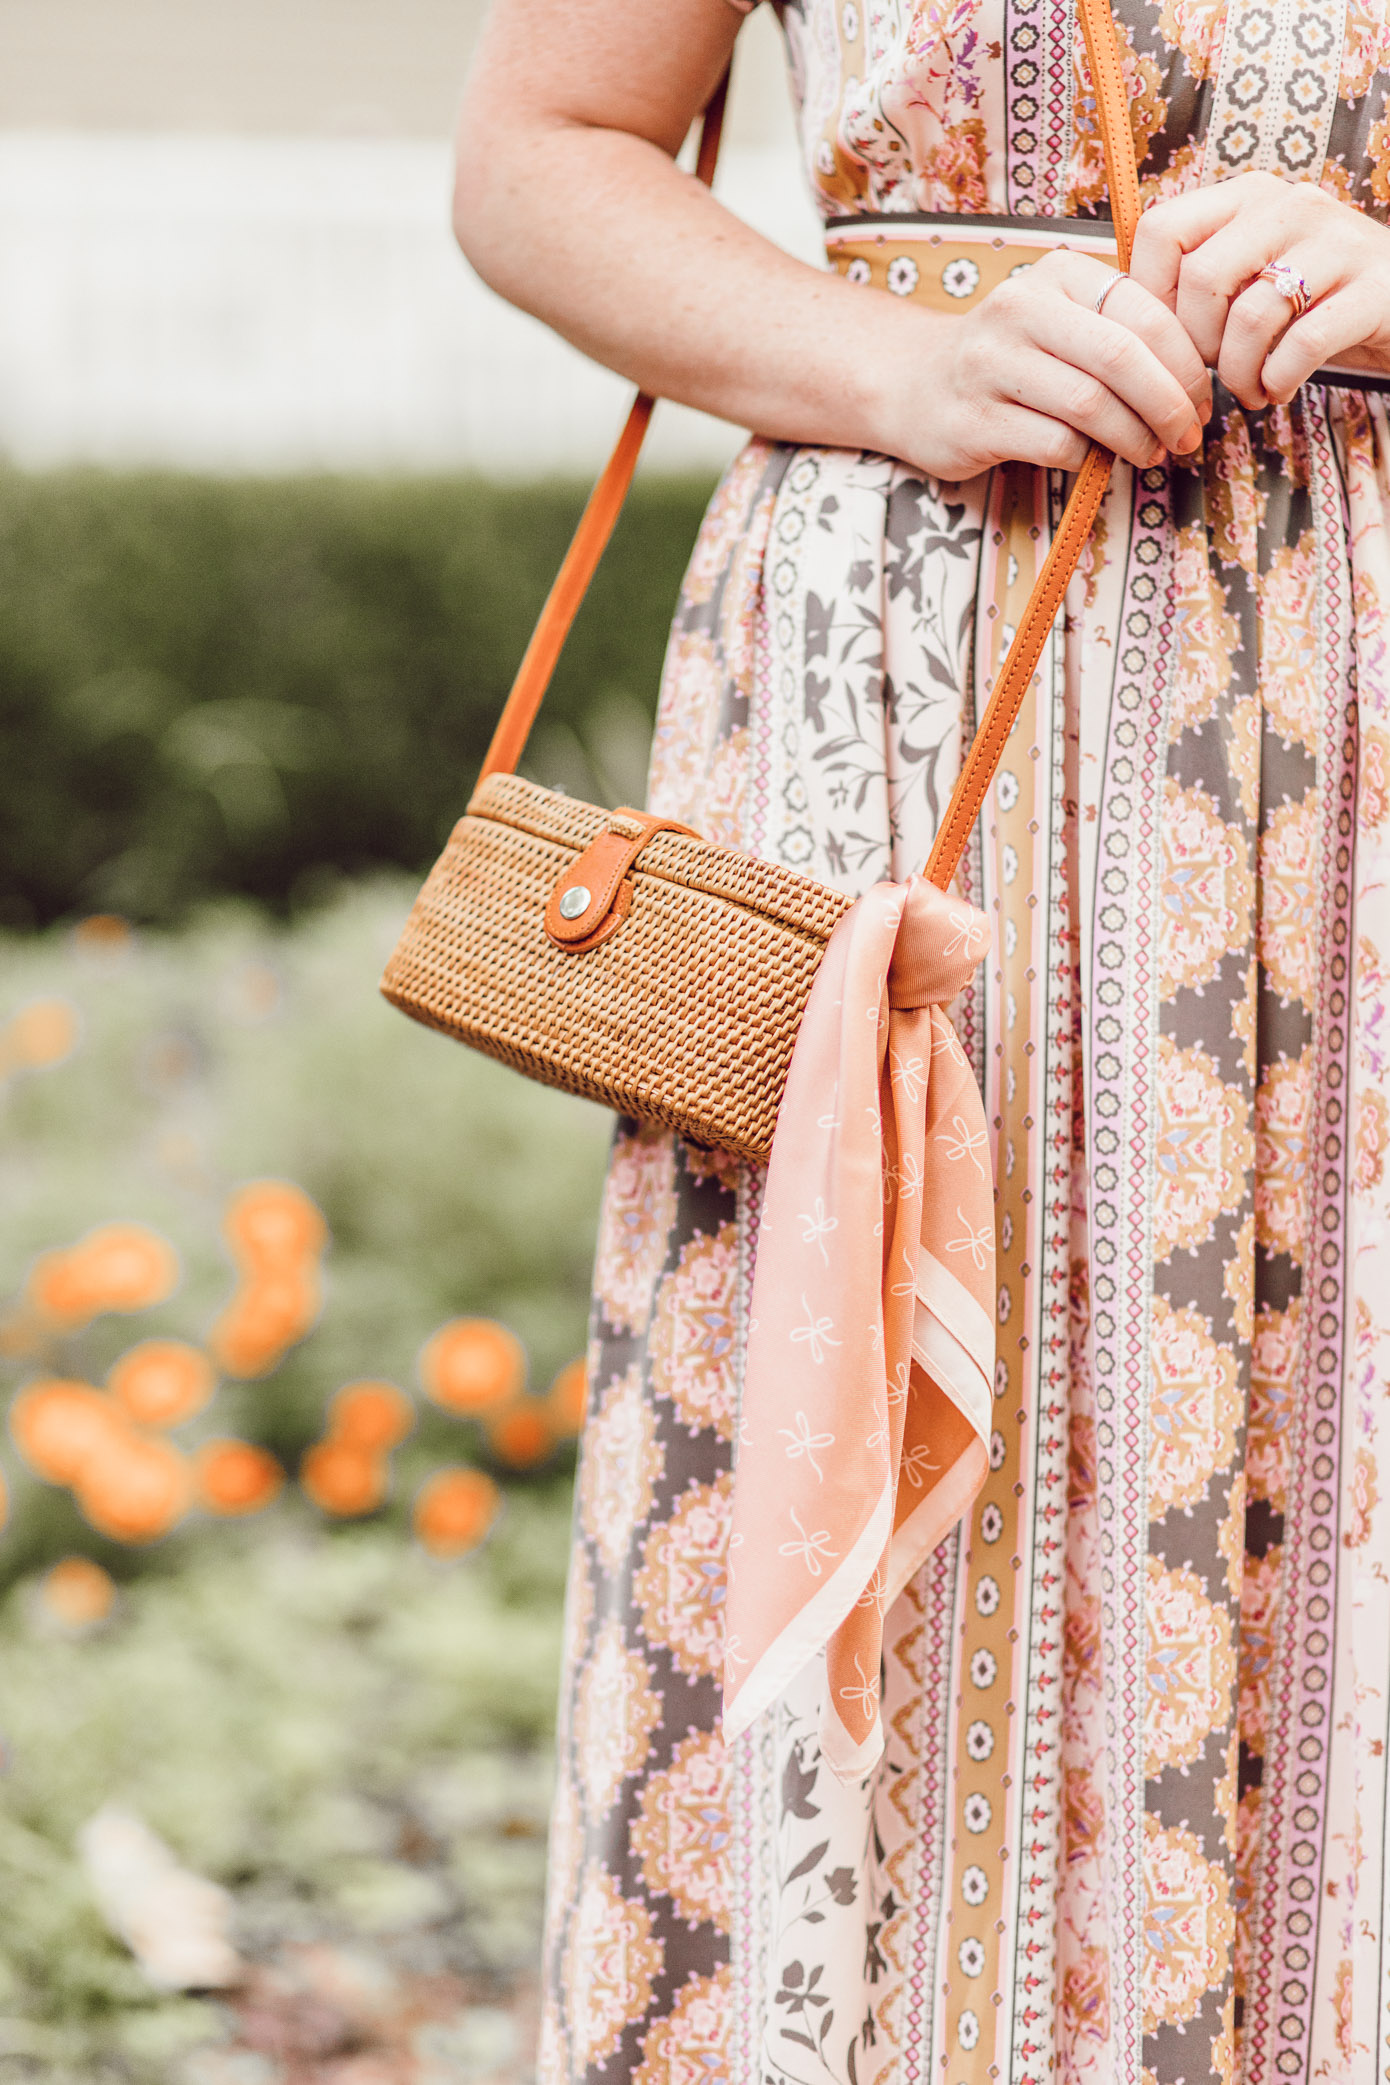 Woven Rattan Cross Body Bag | Gal Meets Glam Collection Liza Dress styled for Fall on Louella Reese